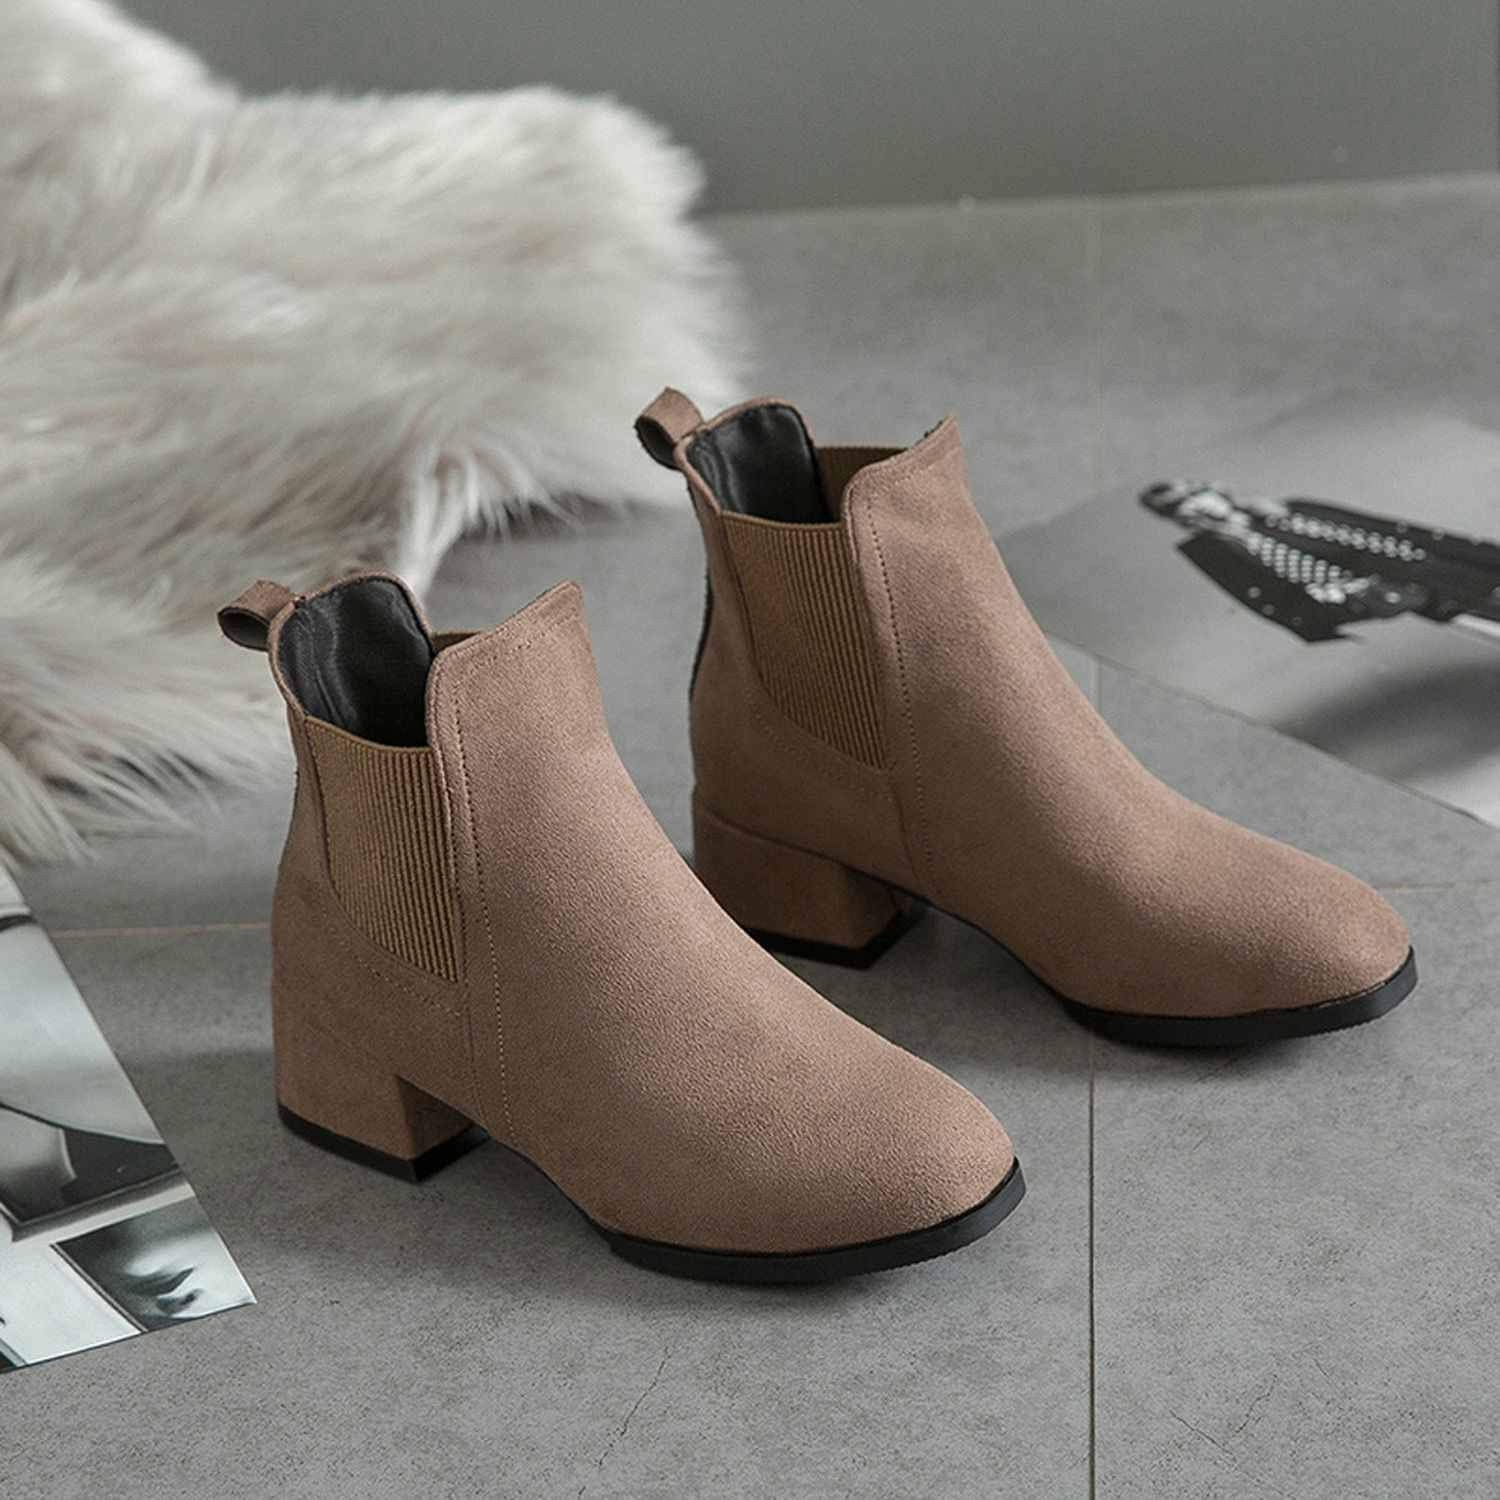 Amazon.com | 2018 Black Ankle Boots Women Thick Heel Slip on Ladies Shoes Martin Boots Feminina High Heel Shoes | Shoes